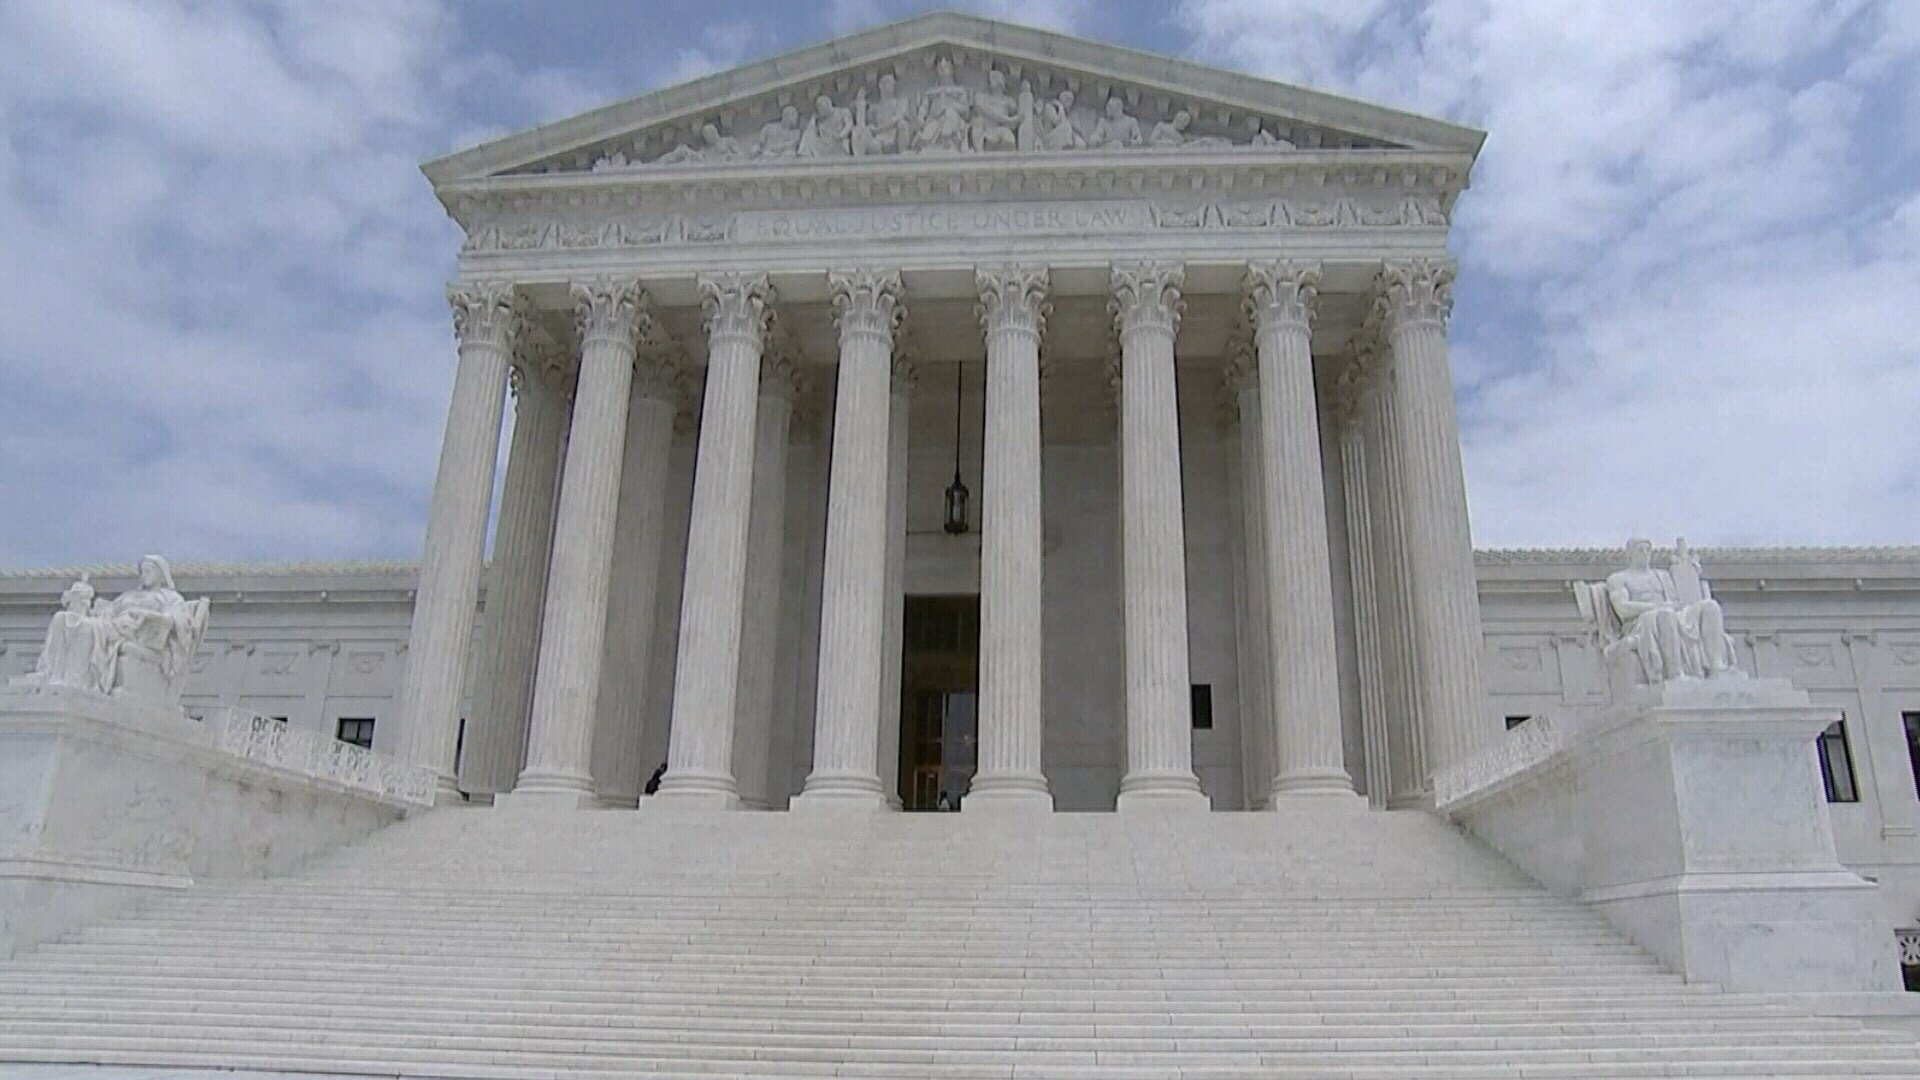 State of Texas: Supreme Court to hear challenge to Texas voting districts